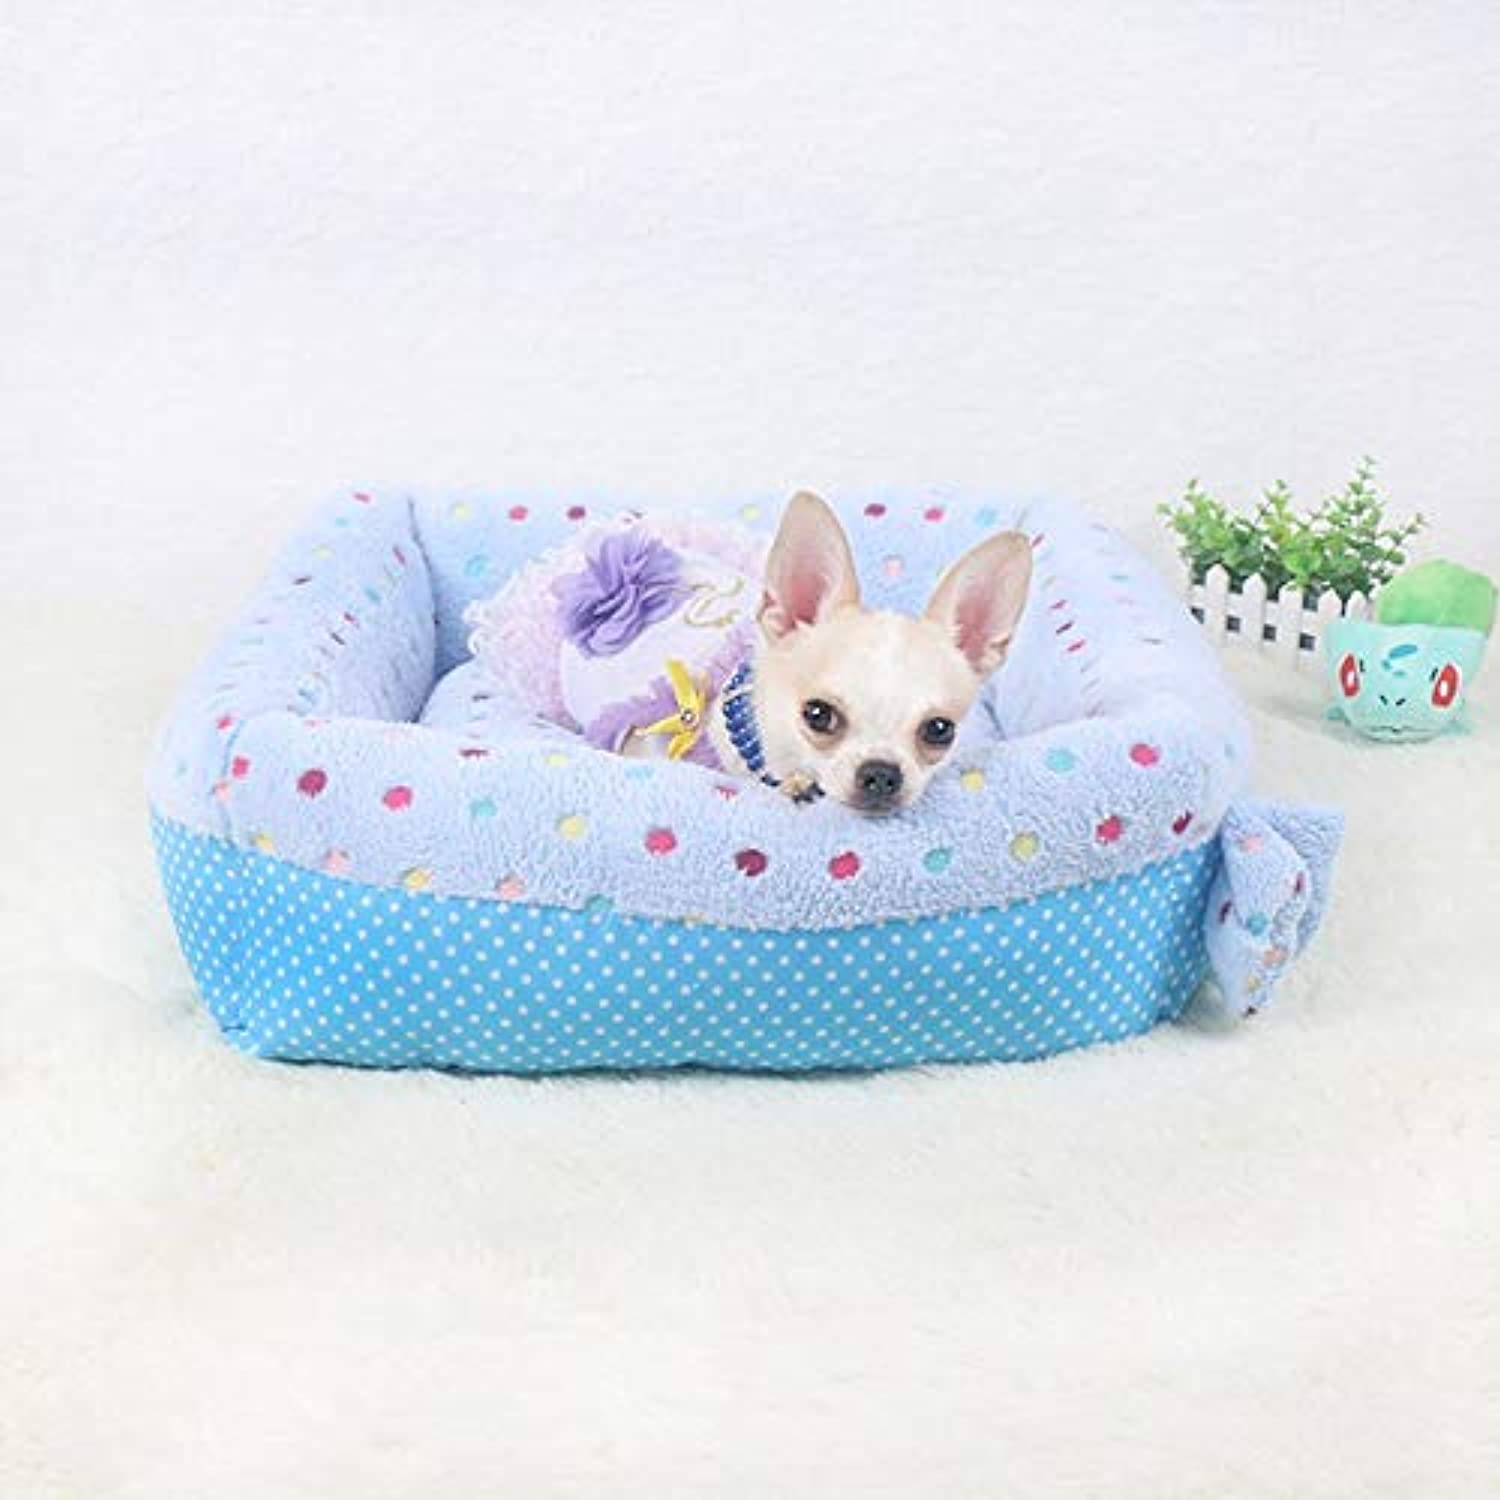 Aigou Dog Bed Pet Dog Mats Soft Breathable Fall And Winter Warming Dog Kennel Bed For Kitten Puppy Sleeping Mat House Big Blanket Pet Products